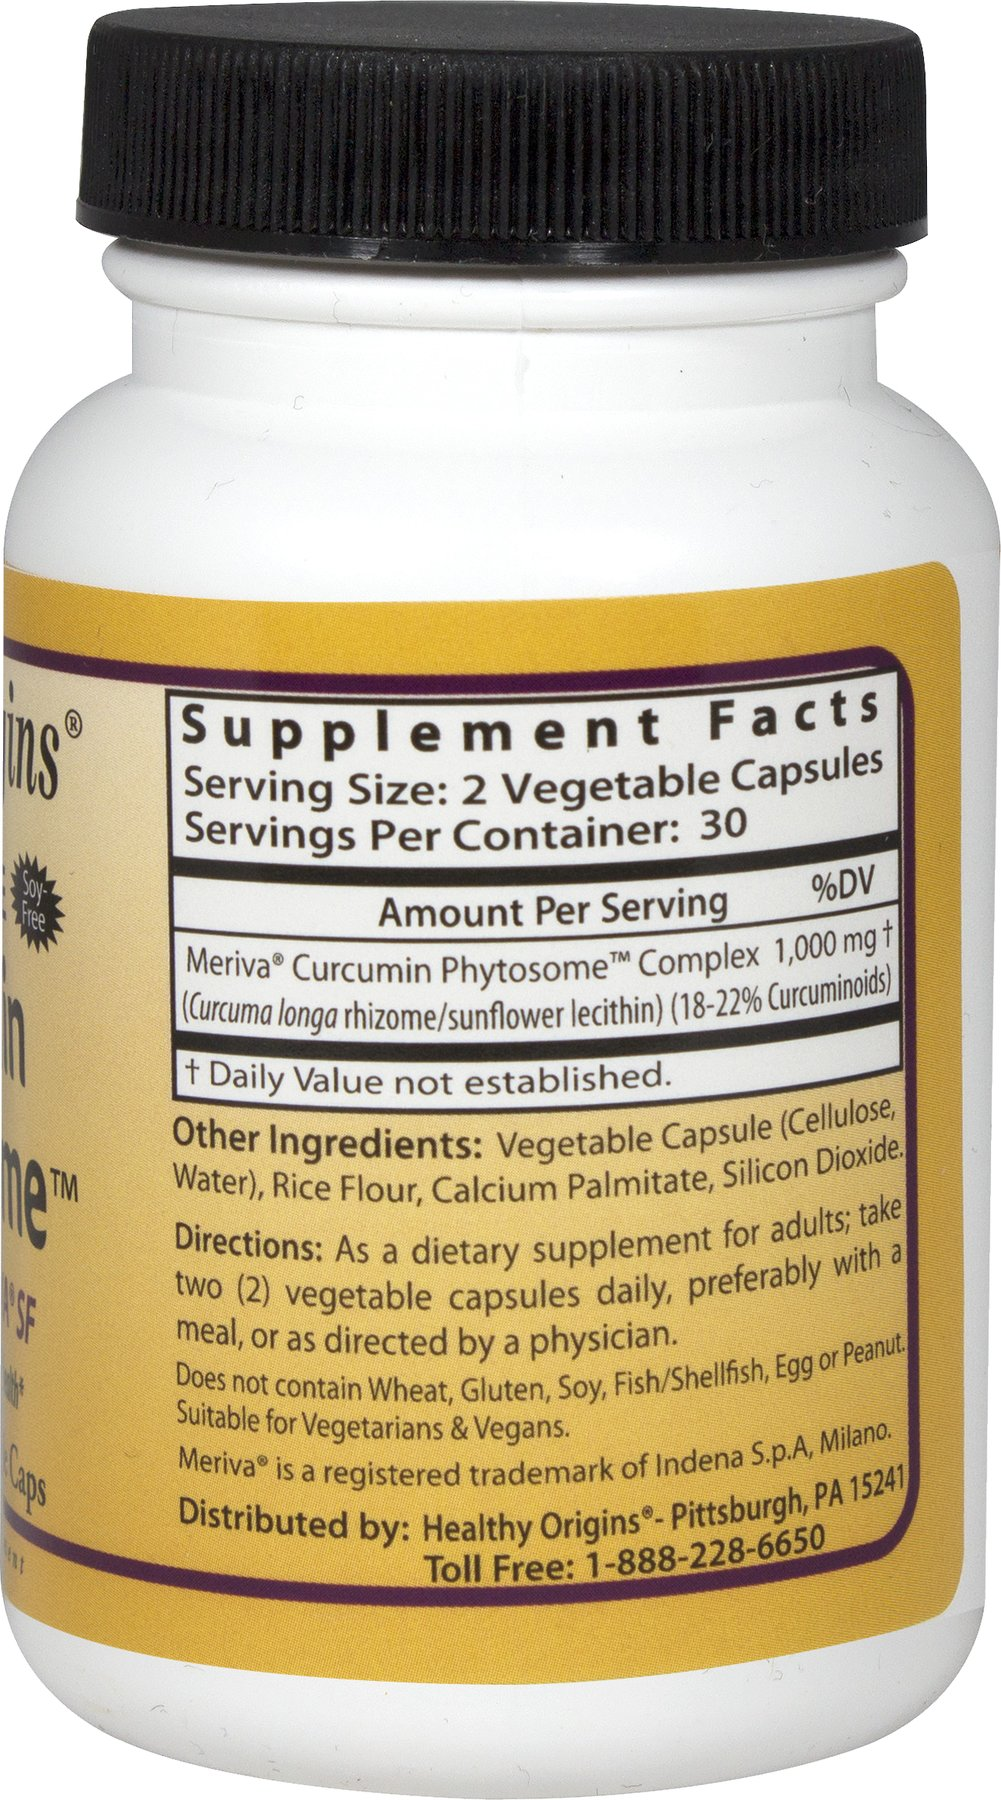 Curcumin Phytosome™ featuring Meriva® SF 500 mg